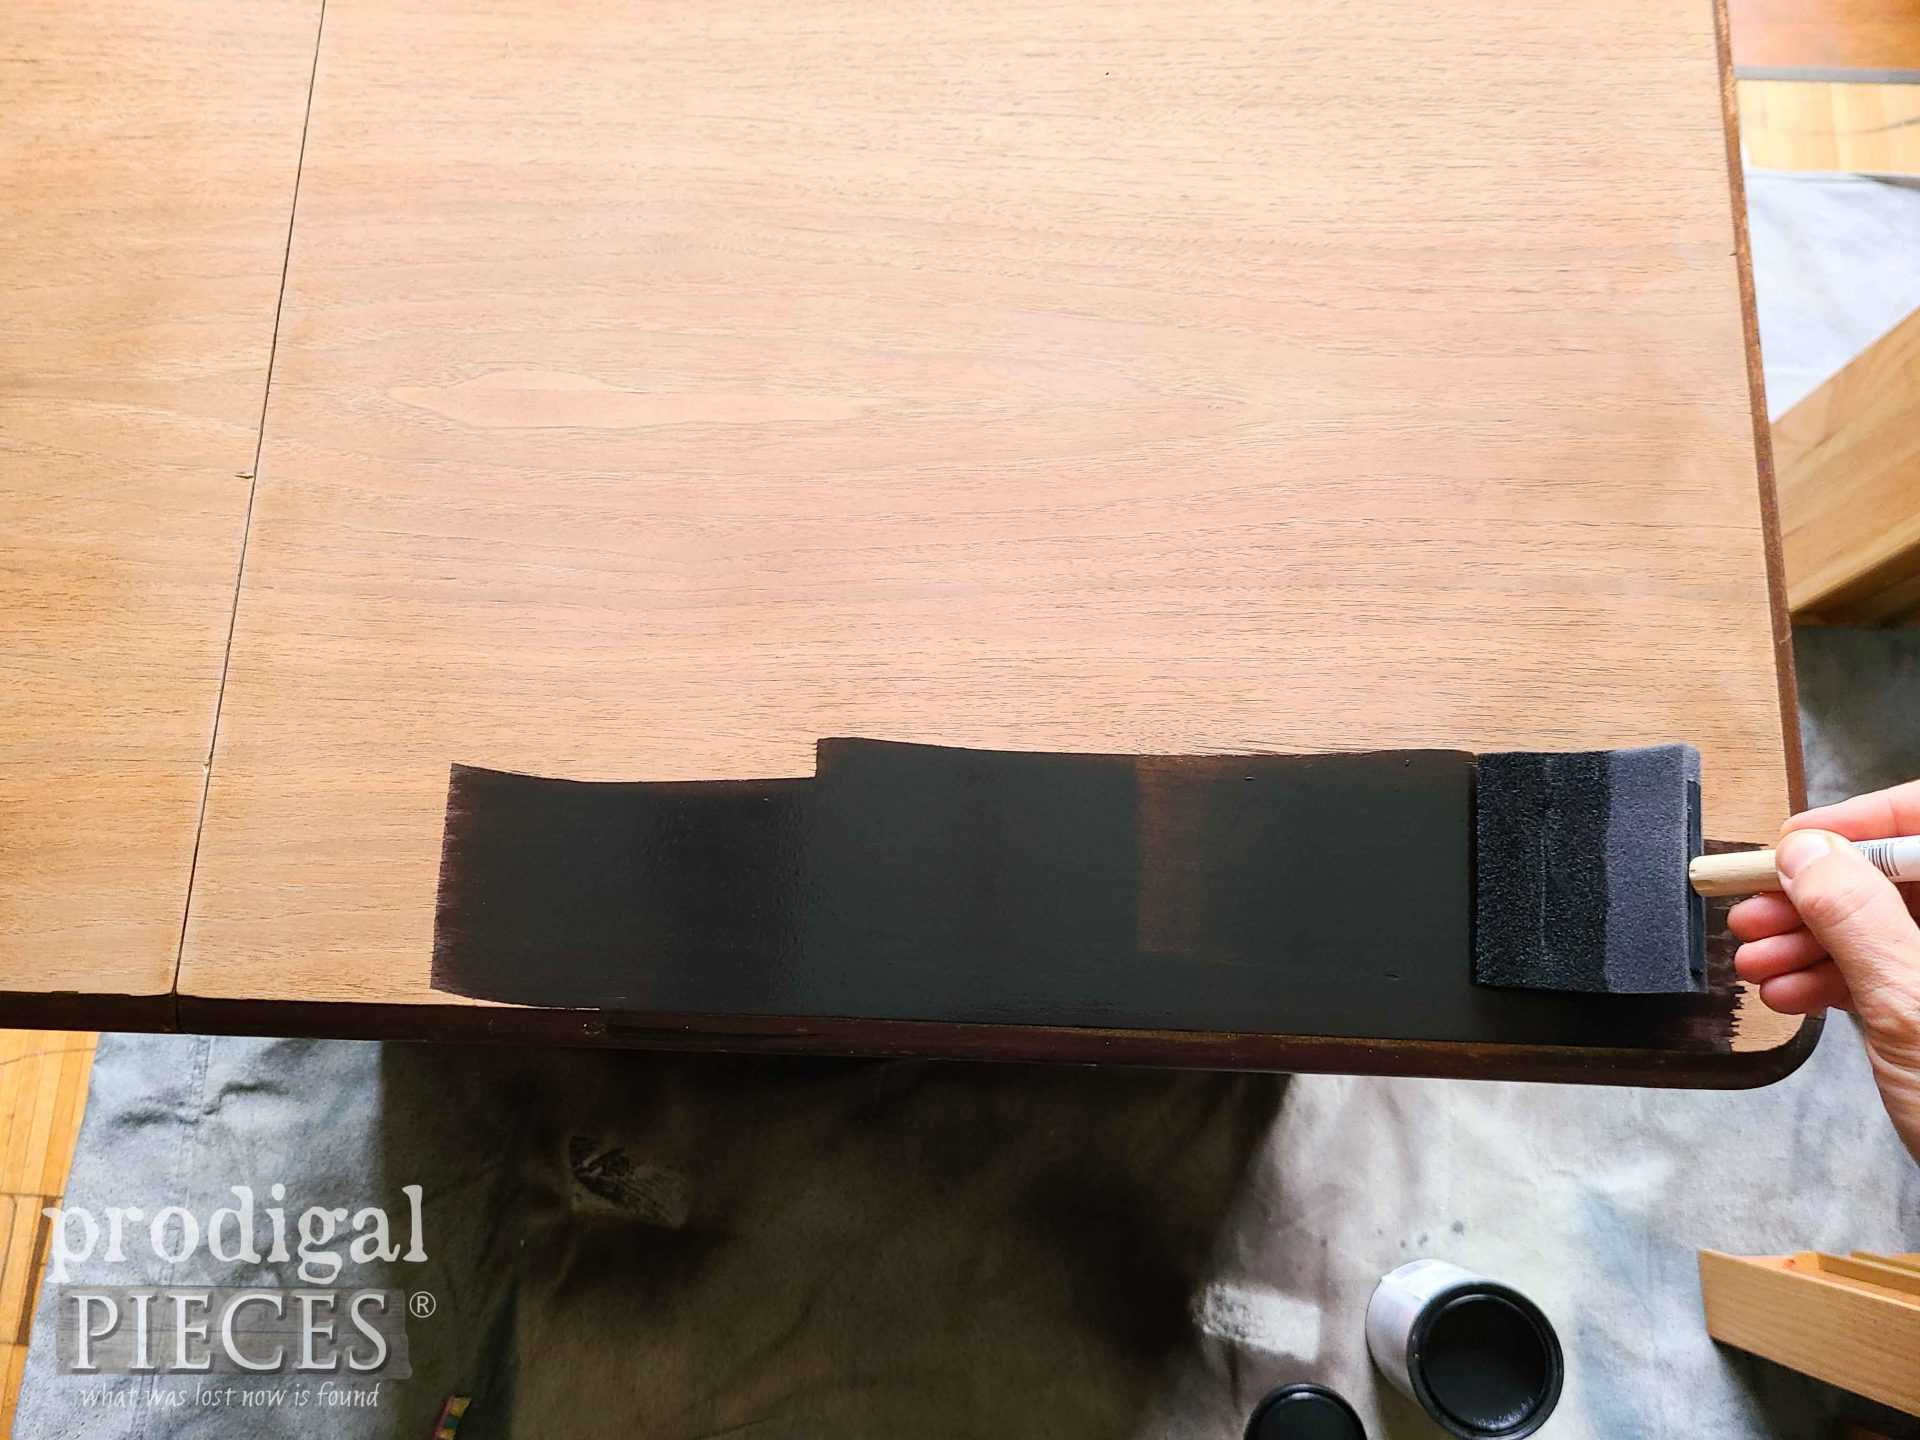 Using Charcoal Reactive Stain to Finish Art Deco Sewing Desk | prodigalpieces.com #prodigalpieces